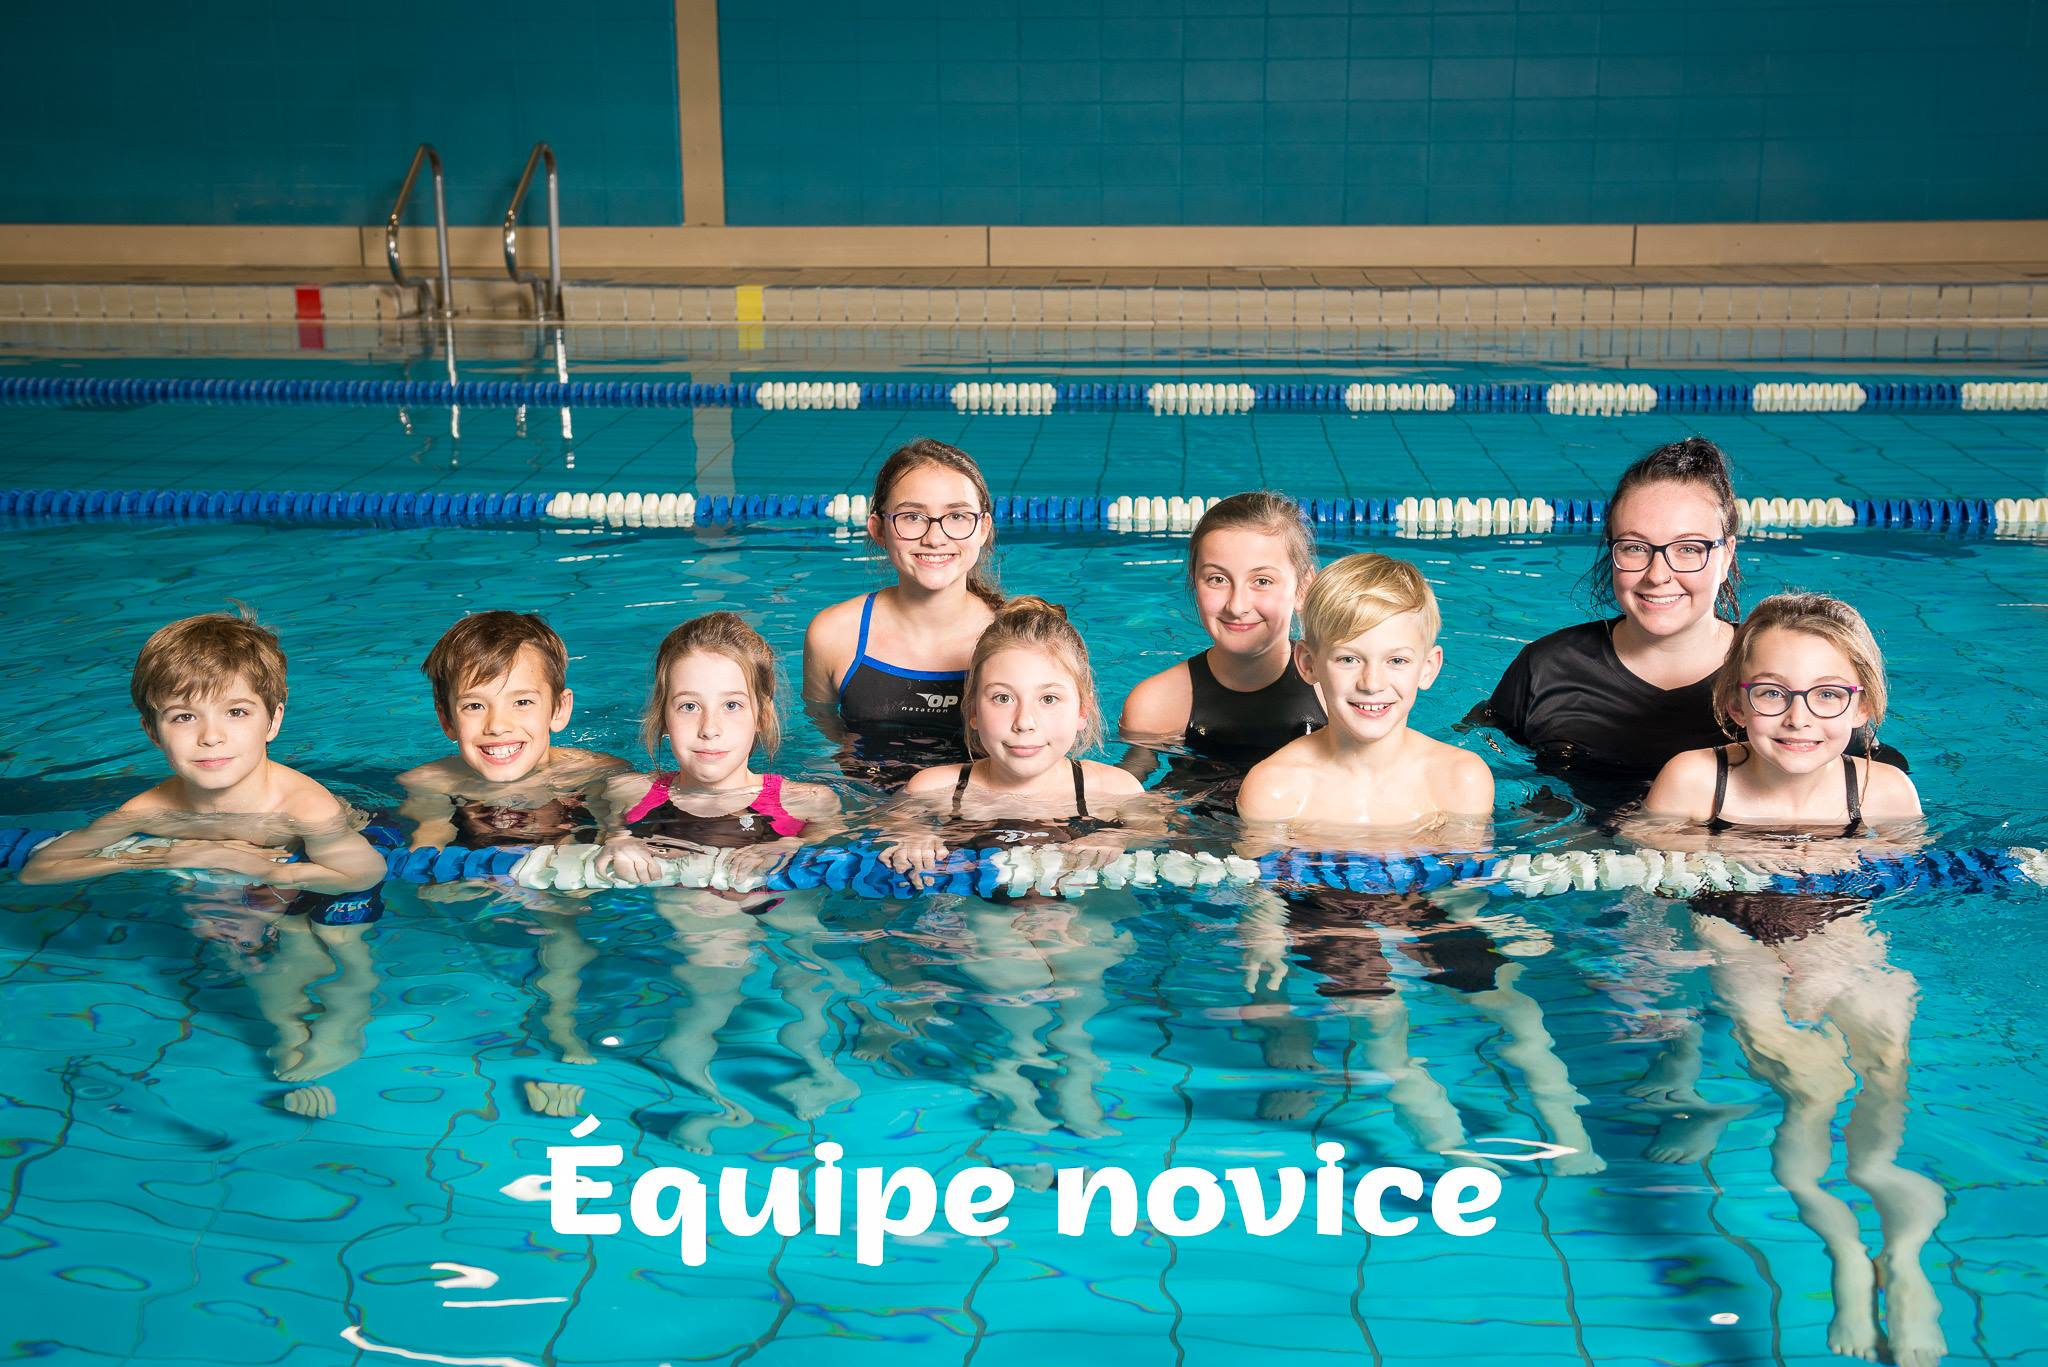 groupe_novice